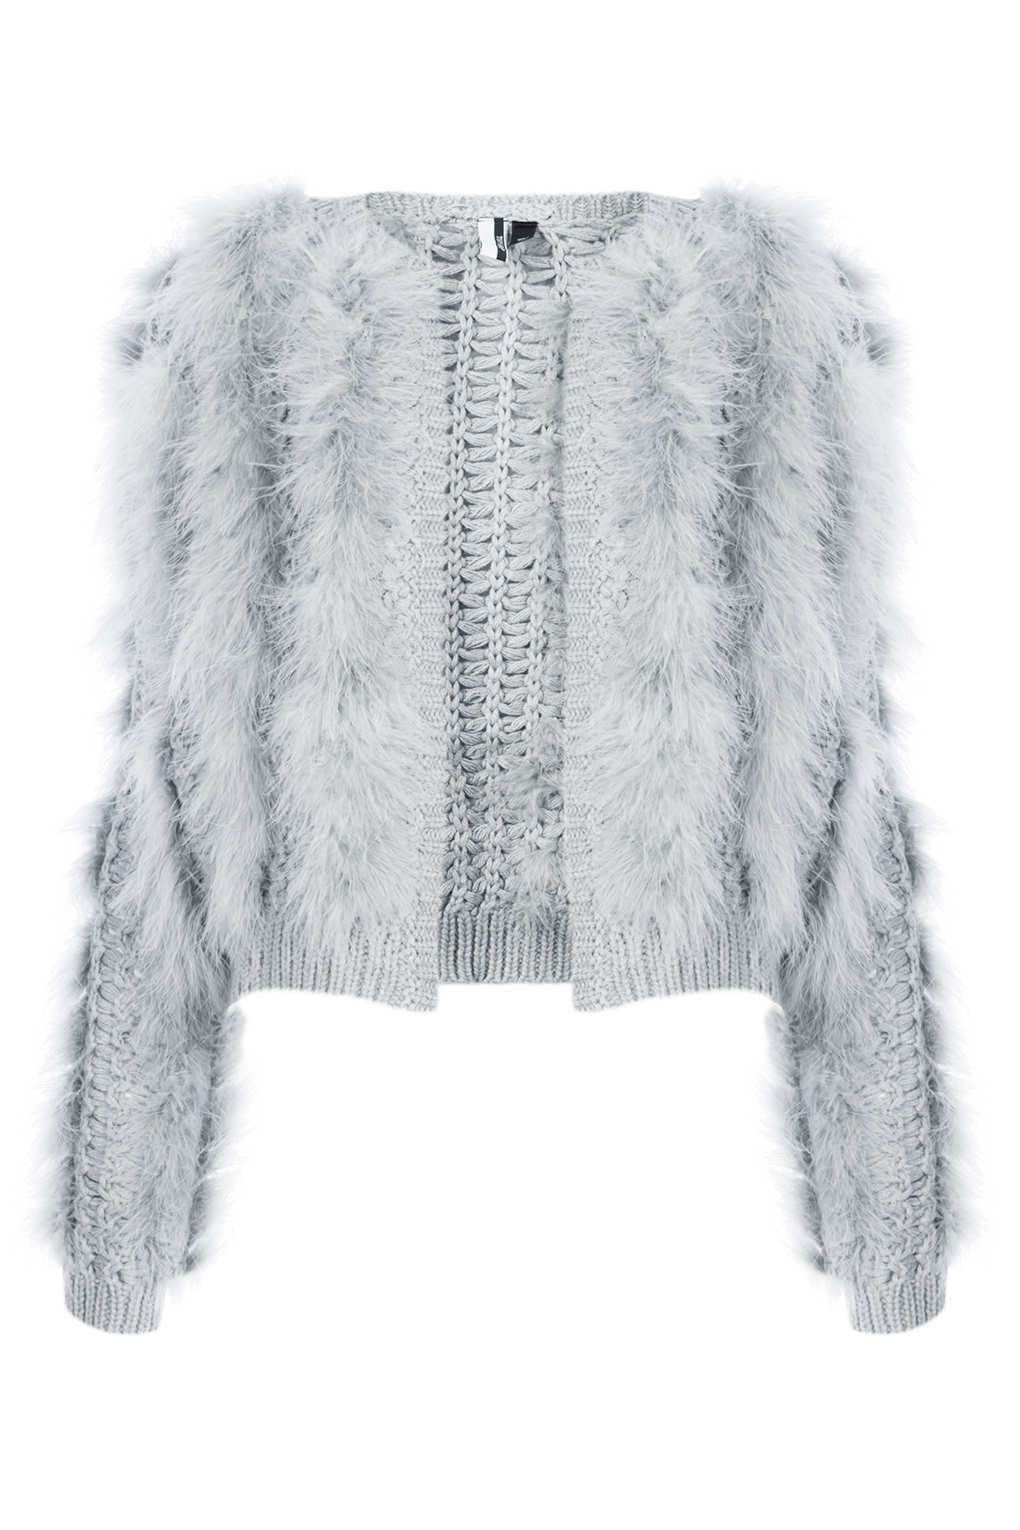 ICONIC  8 TOPSHOP GREY FEATHER CARDIGAN